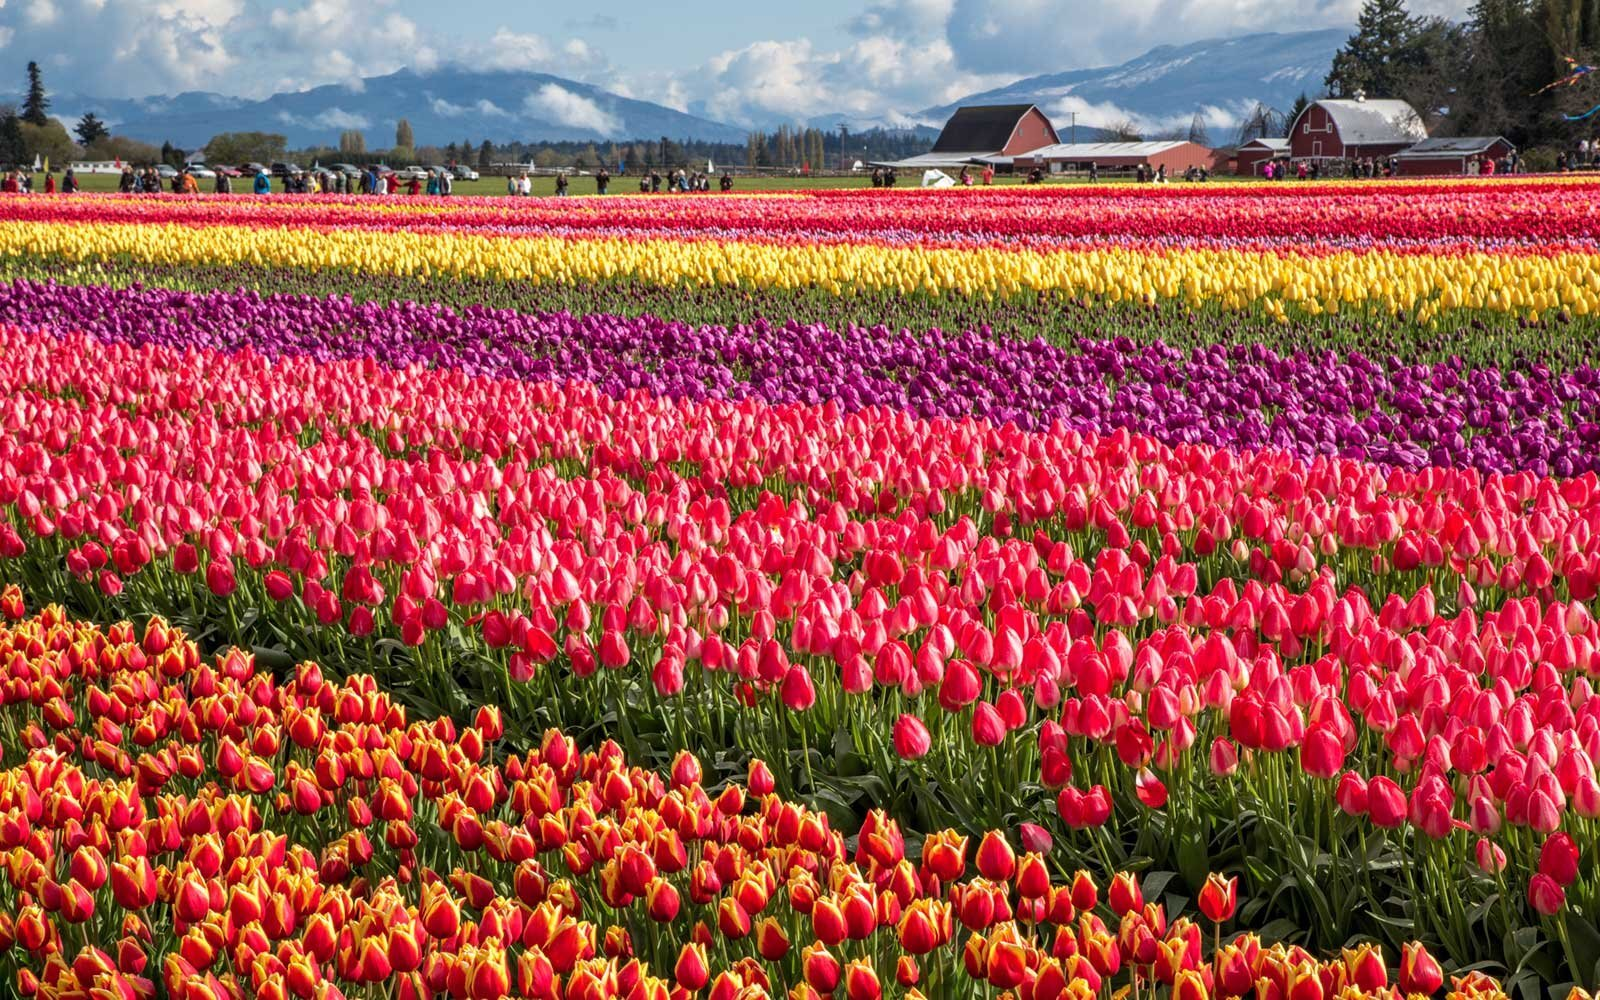 8 best spring and summer flower festivals in the u.s. | travel + leisure